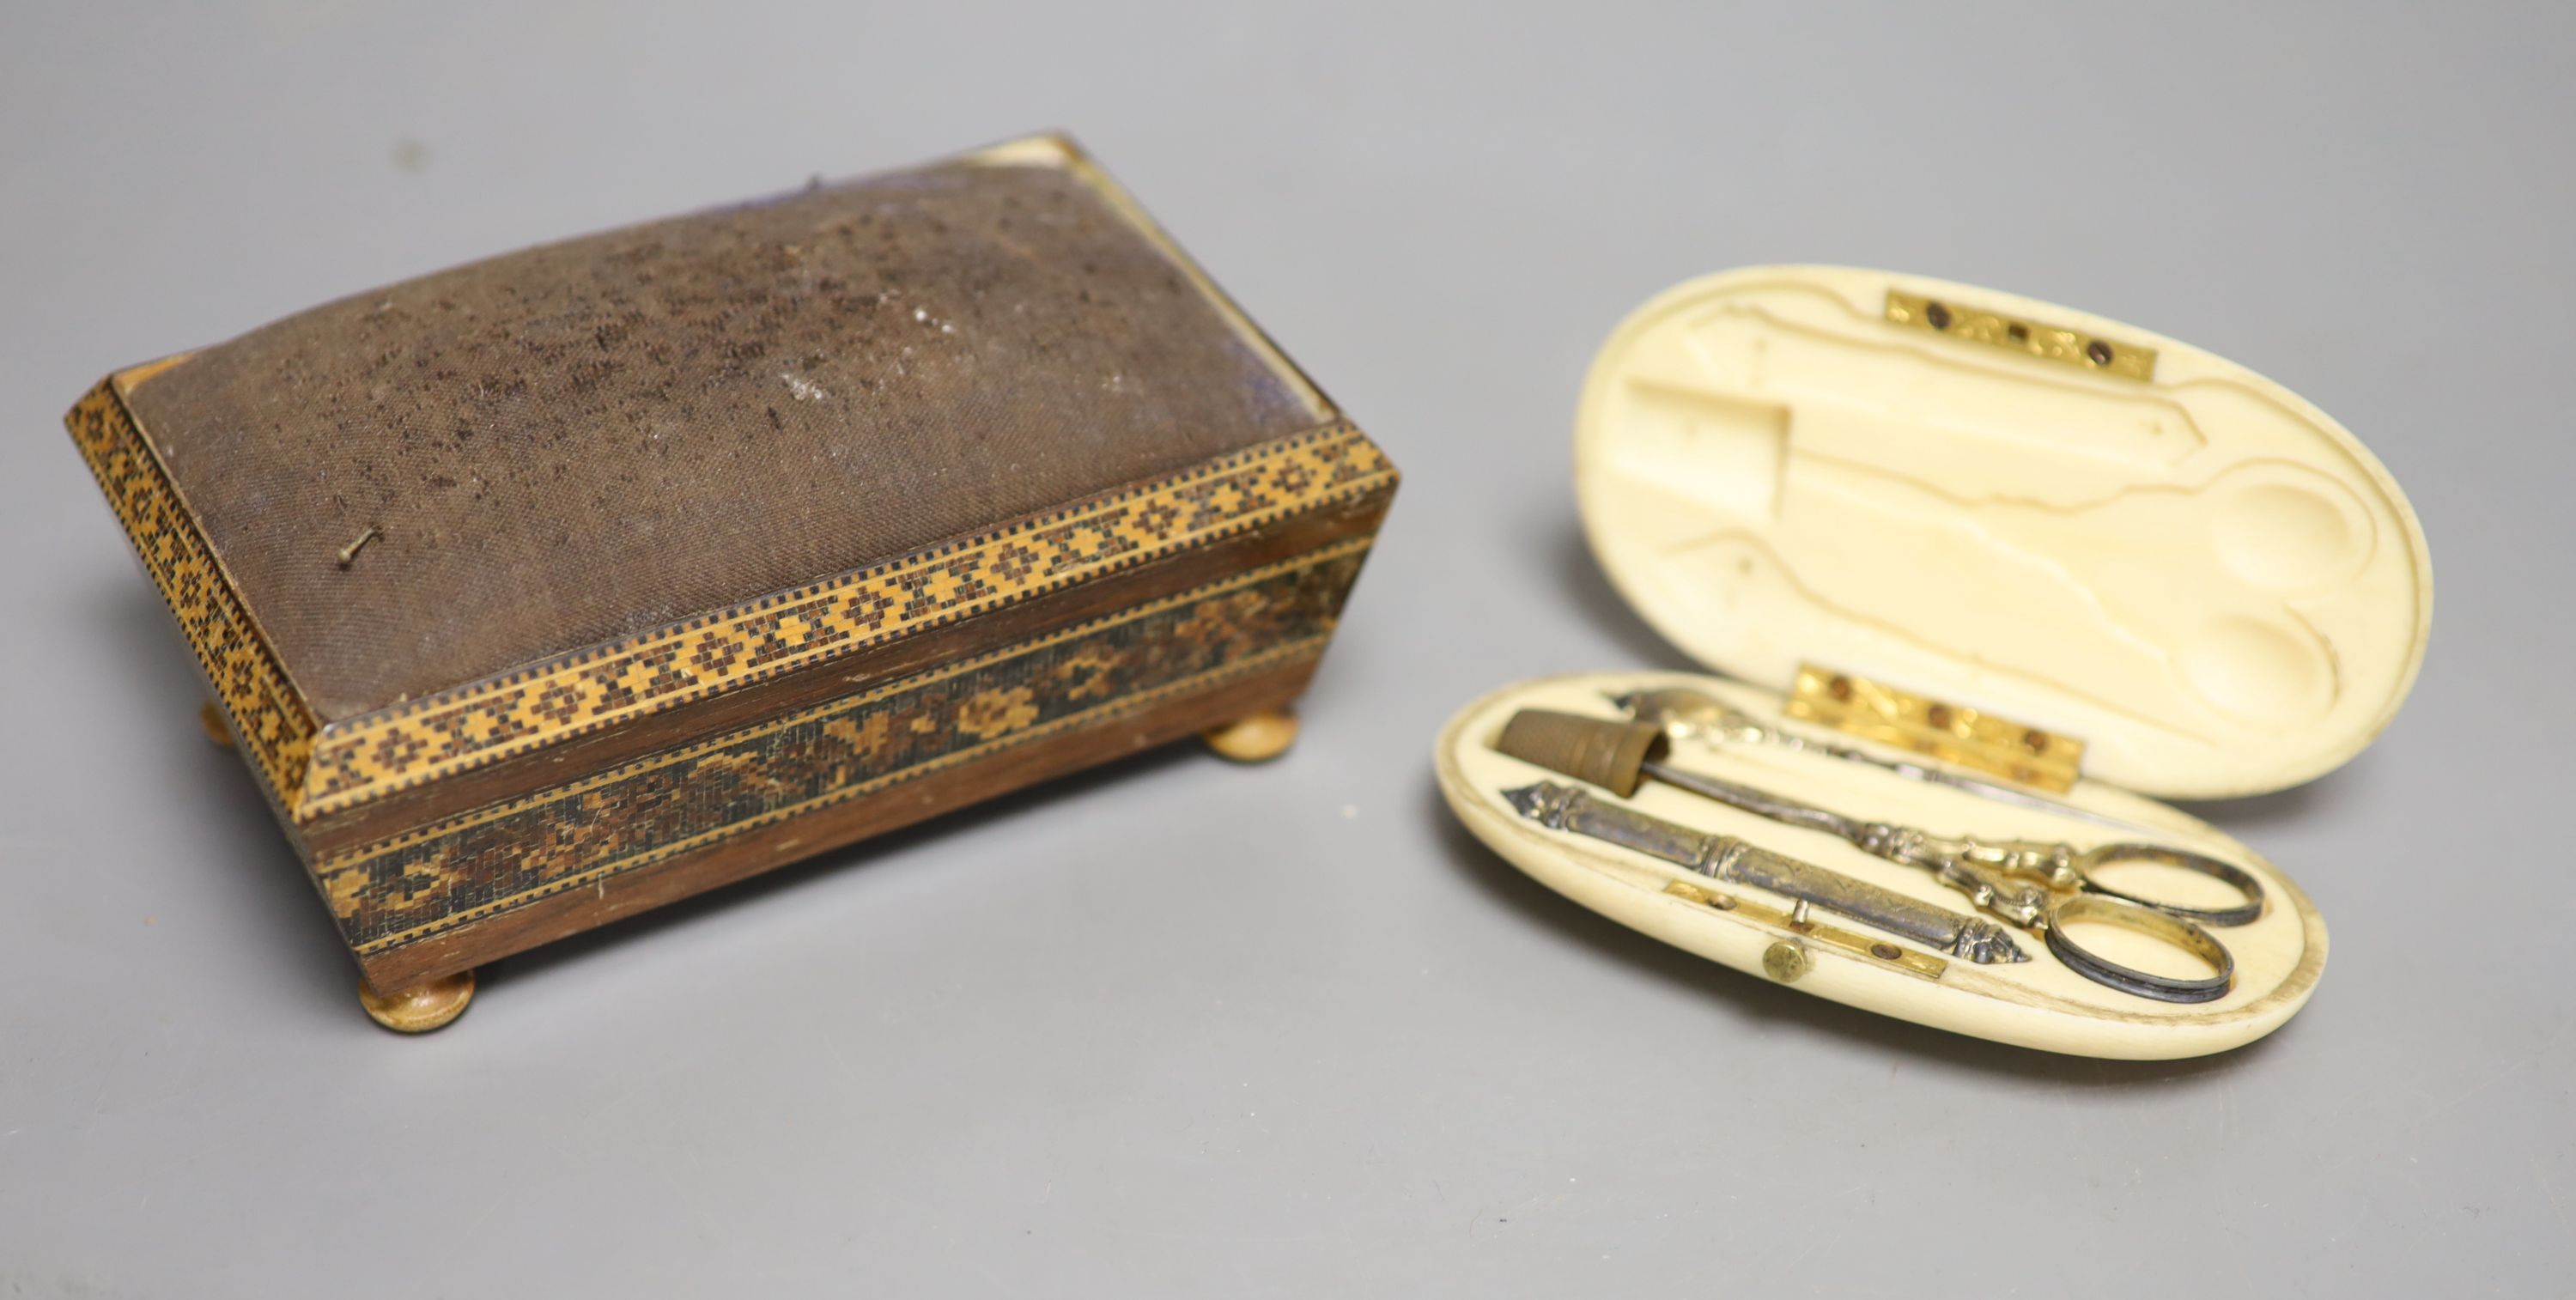 A Tunbridgeware pin cushion and an ivory cased manicure set